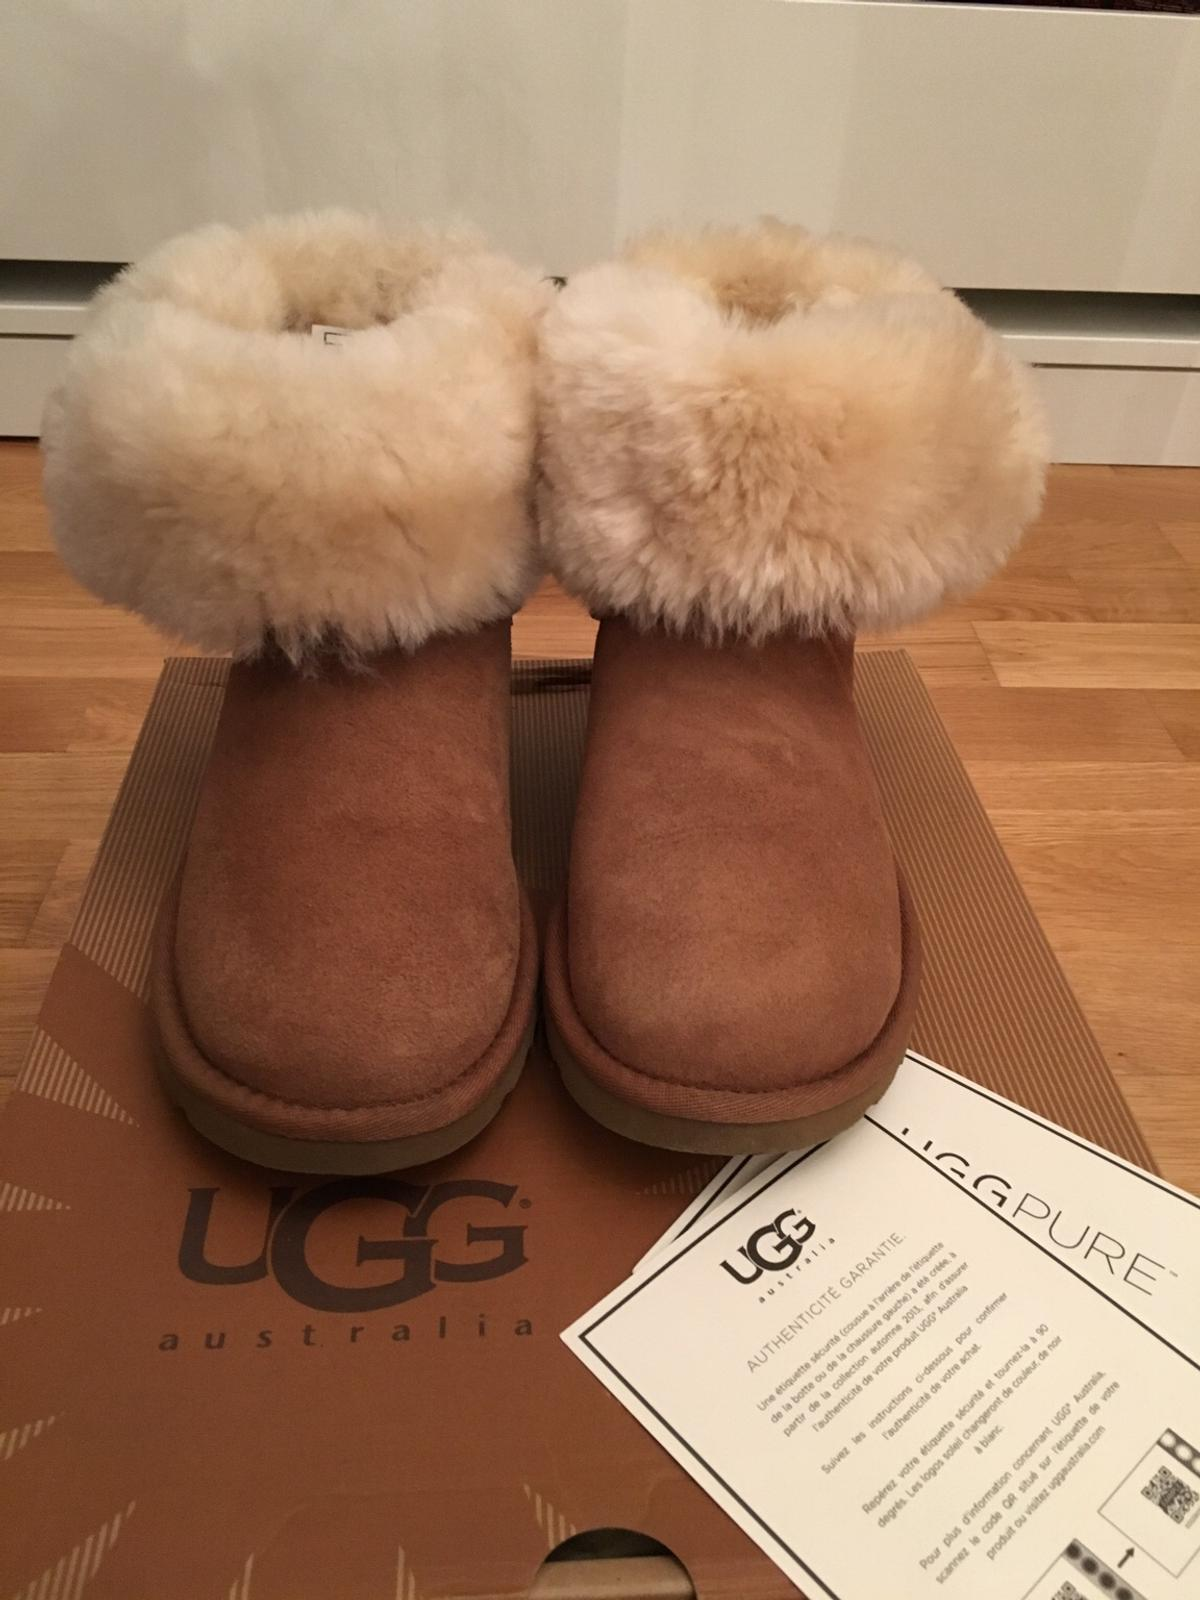 UGG boots in 1010 Wien for €165.00 for sale | Shpock